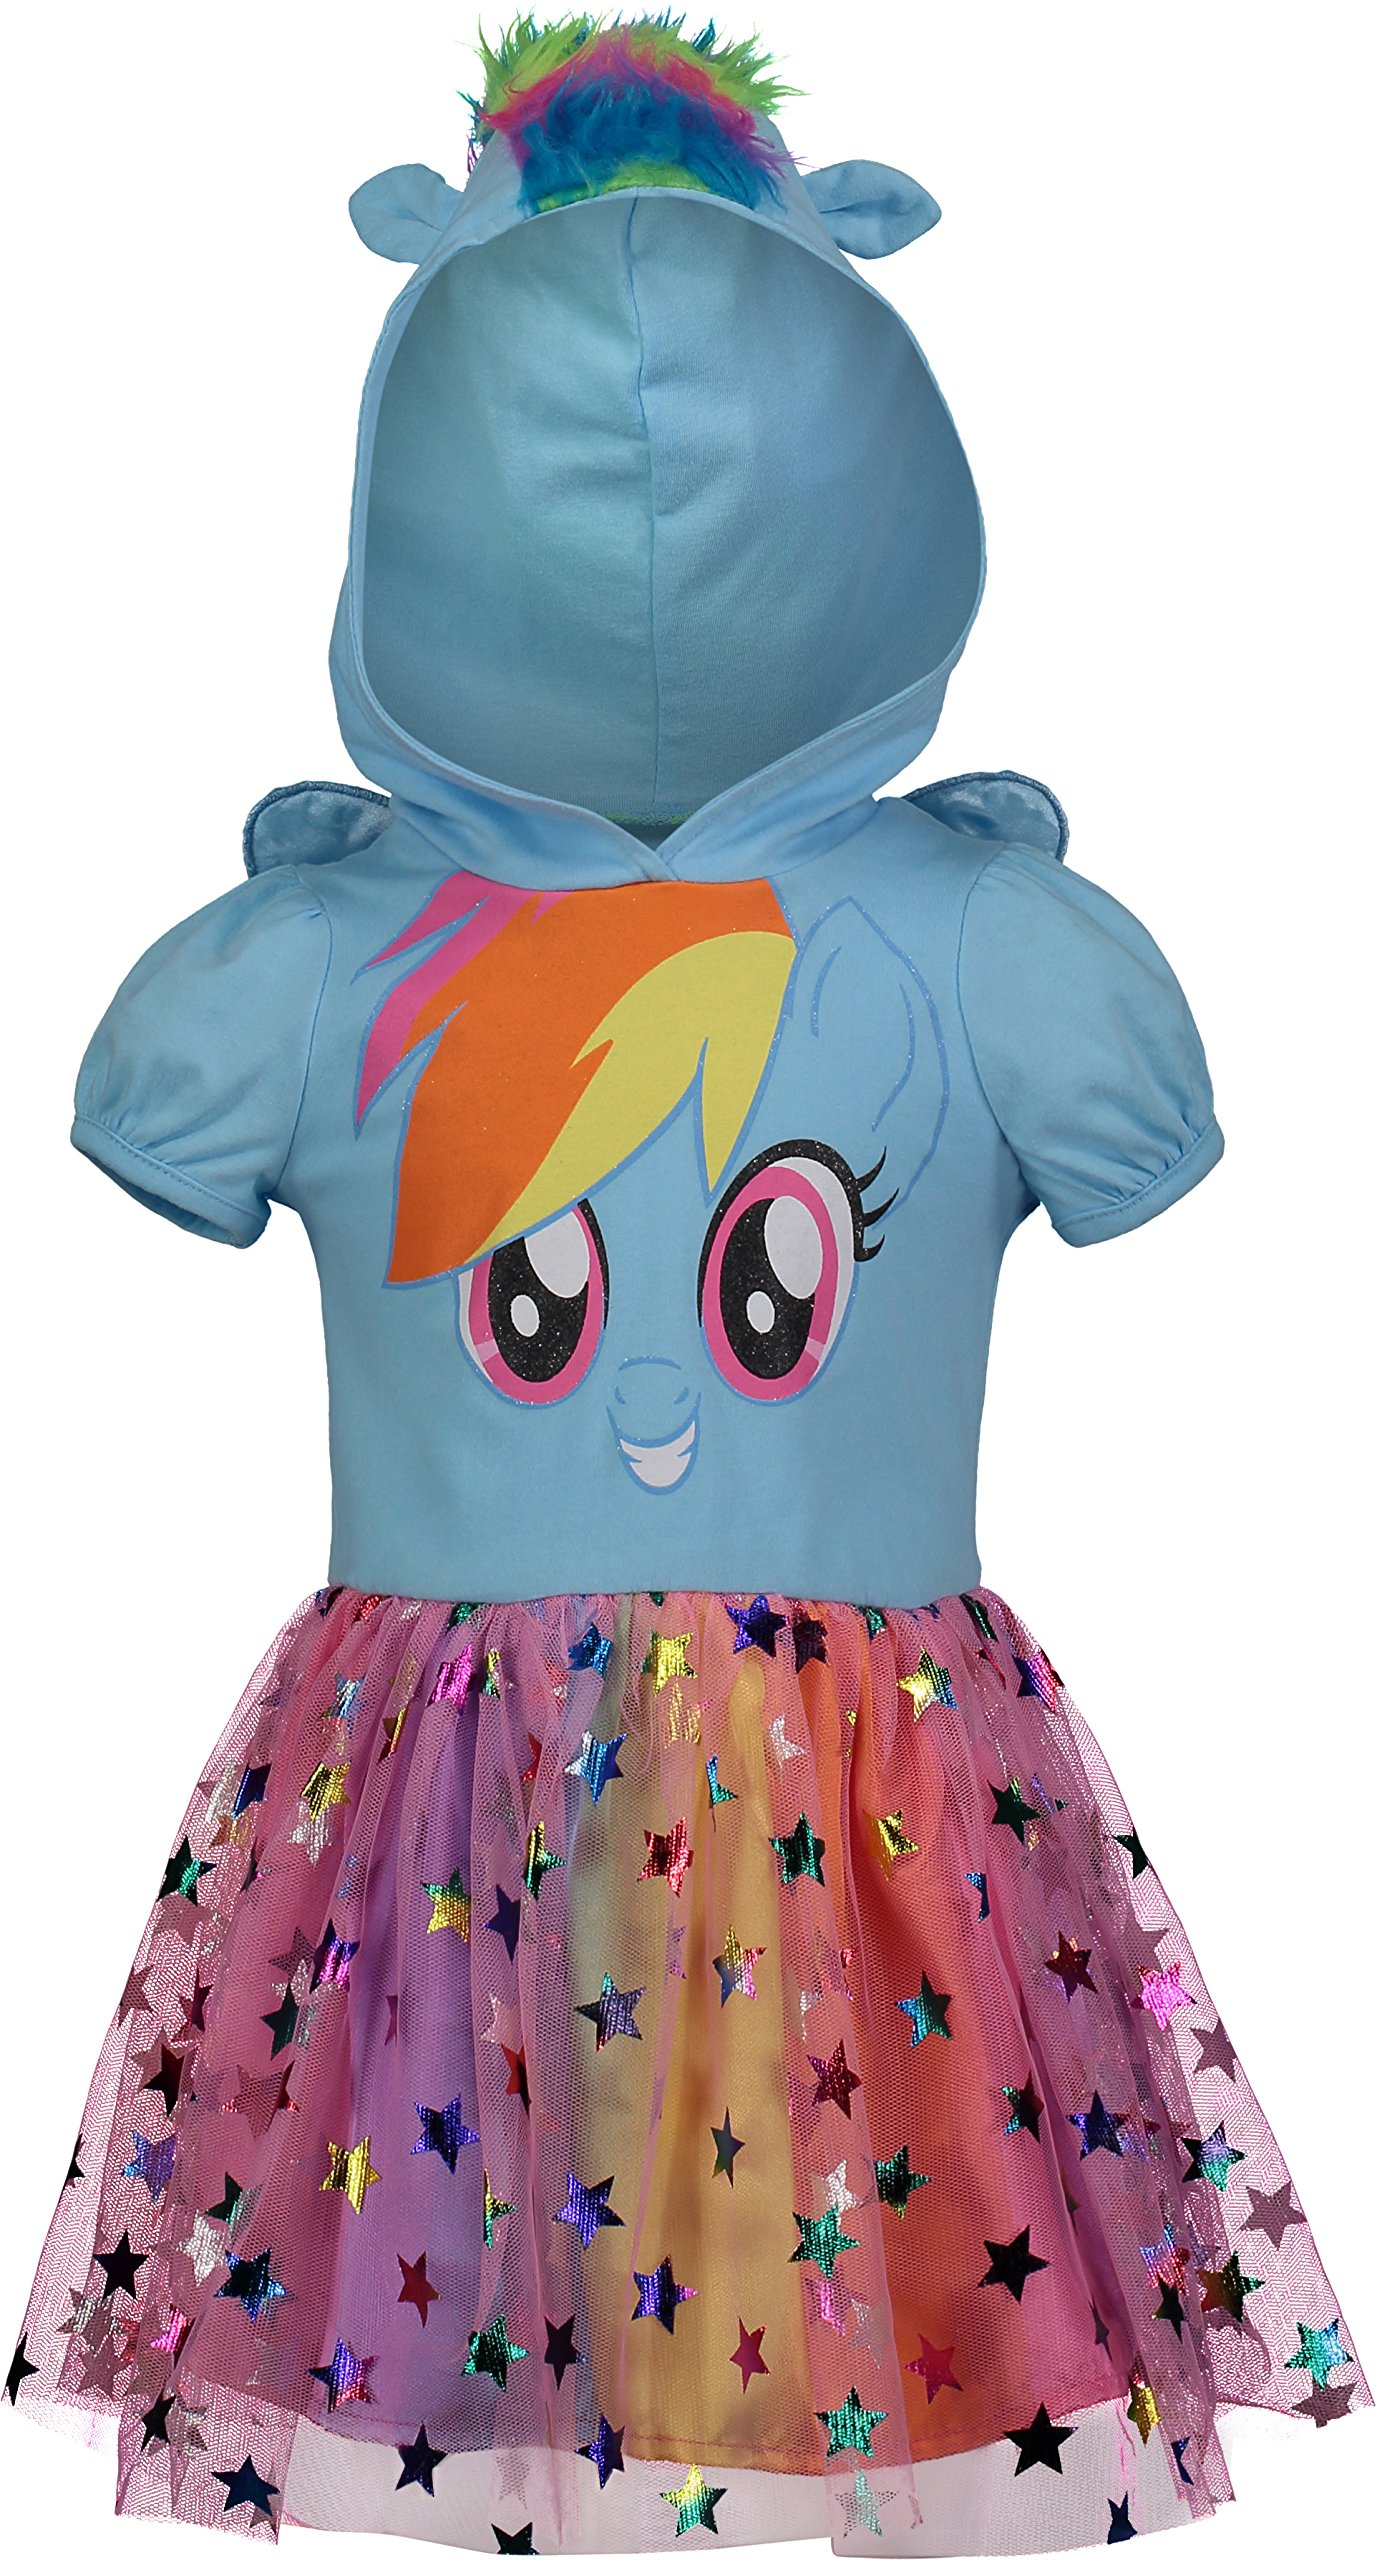 My Little Pony Rainbow Dash Toddler Girls' Costume Dress with Hood and Wings, Blue (4T)